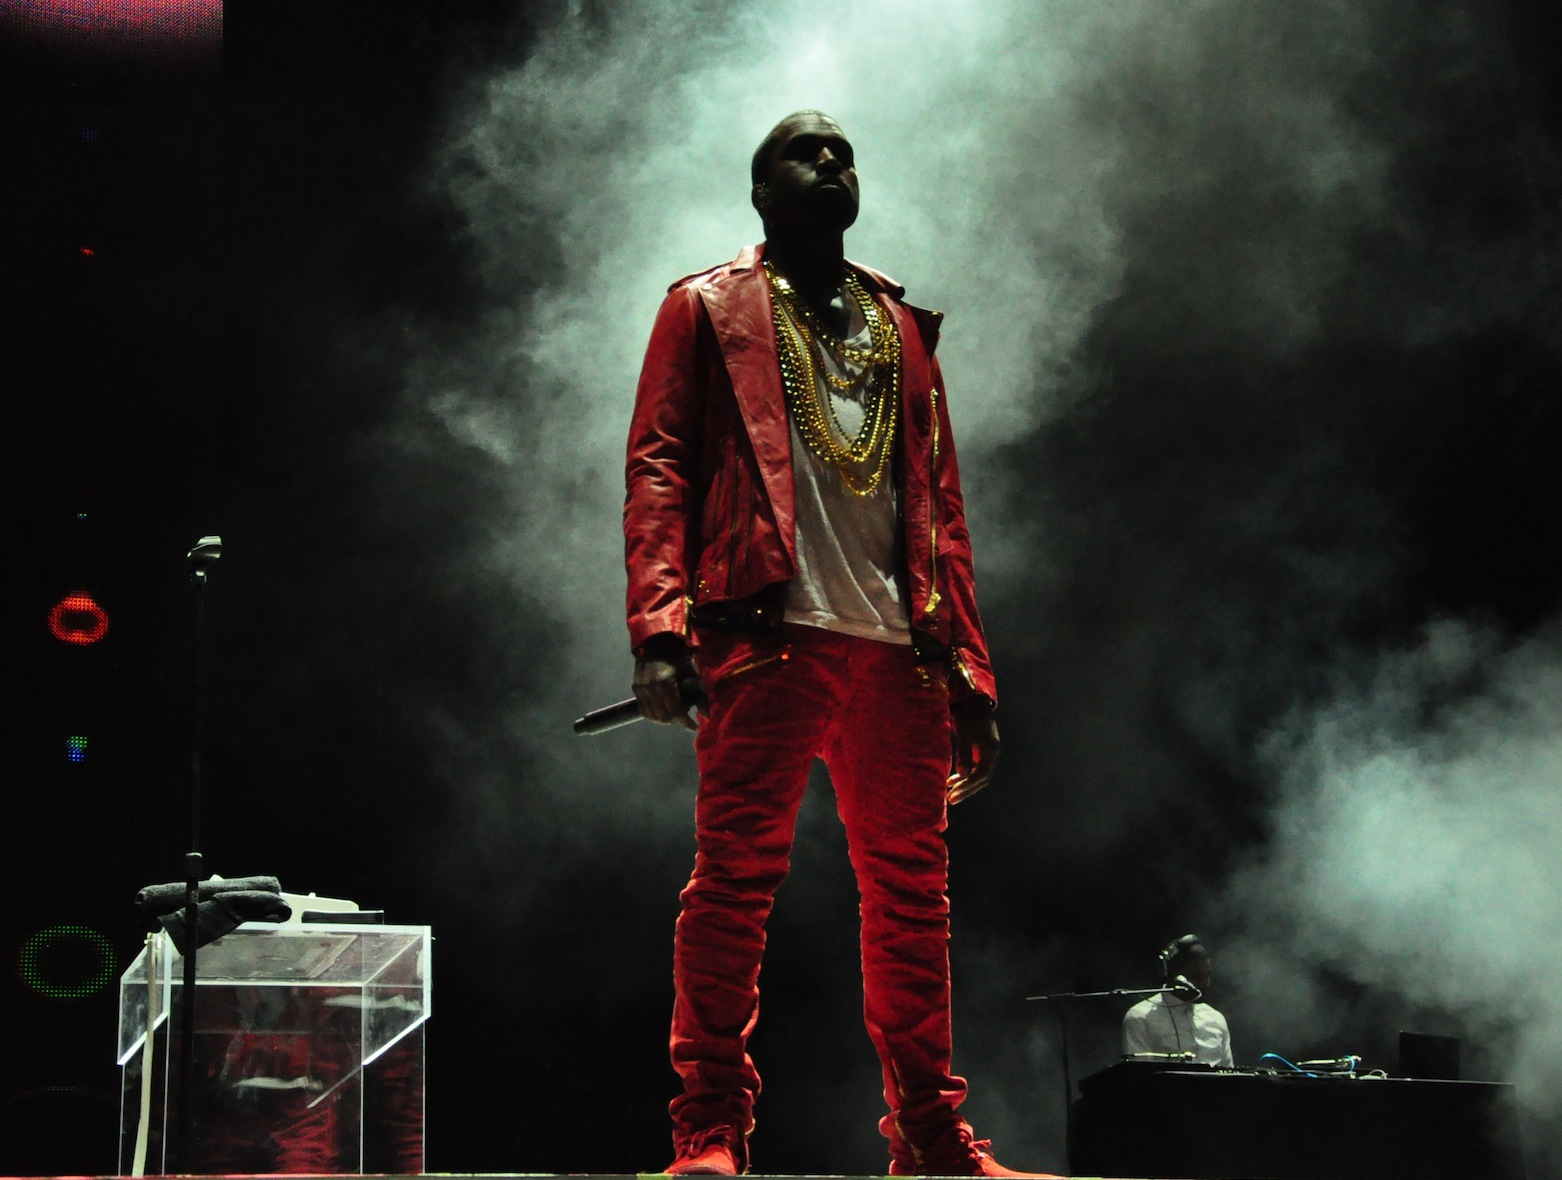 Artist Kanye West, credit Wikipedia Commons.